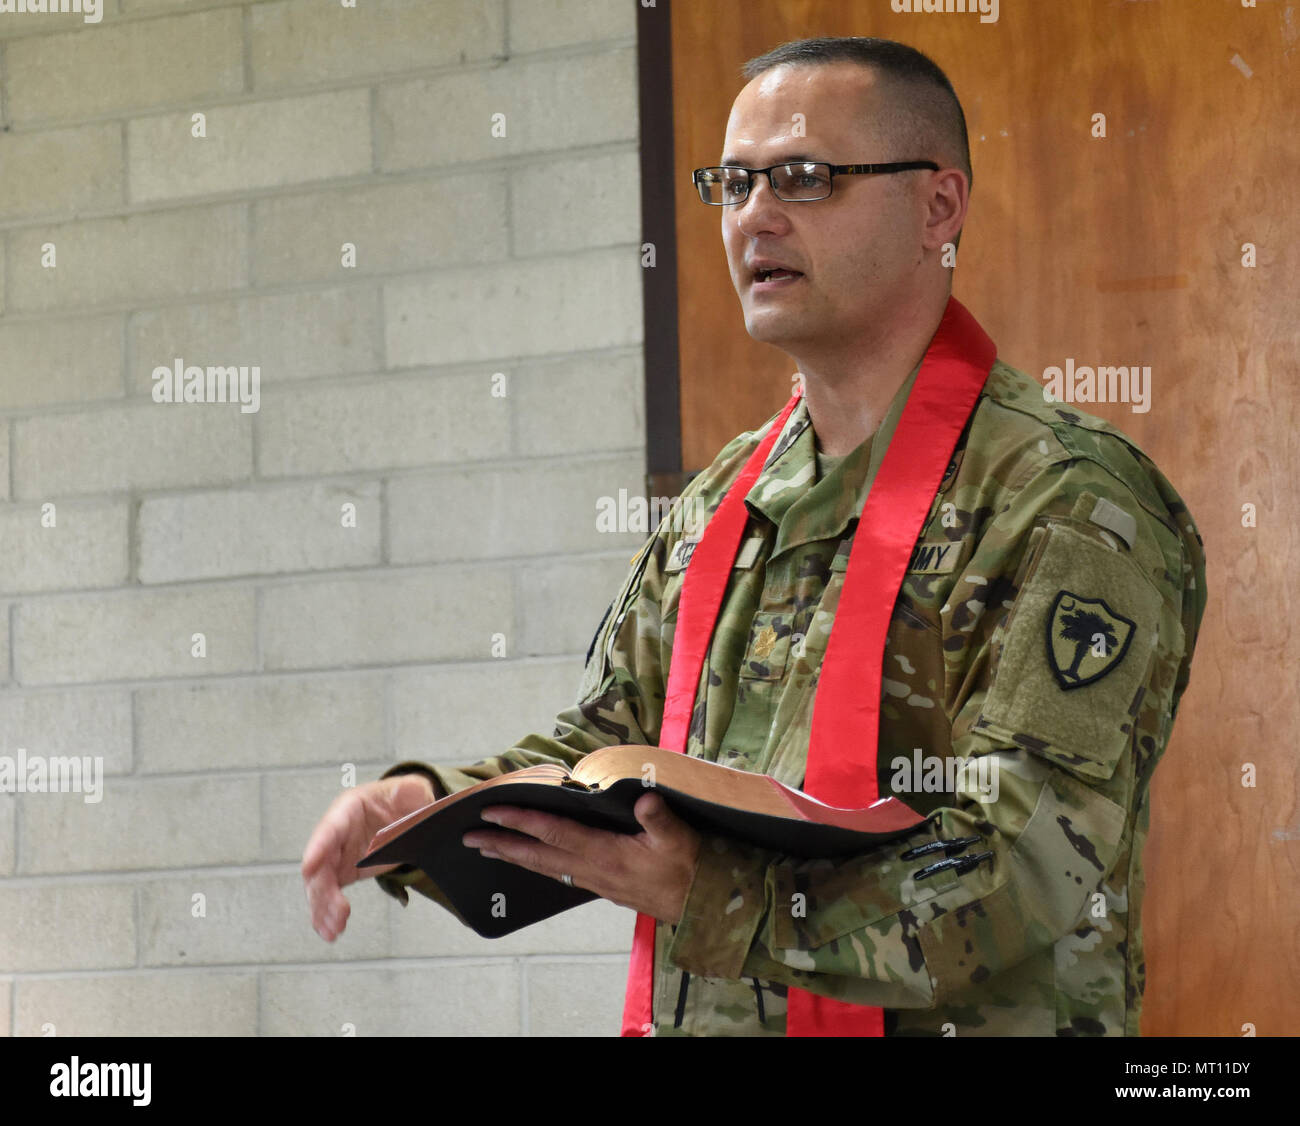 Chaplain (Maj.) Brandon Candee, 1-151st Attack Reconnaissance Battalion chaplain, conducted chapel services July 9, 2017 during annual training at Fort Stewart, Georgia. The sermon focused on the fear of change and how to overcome those fears in preparation for deployment for Soldiers with the 1-151st ARB. - Stock Image